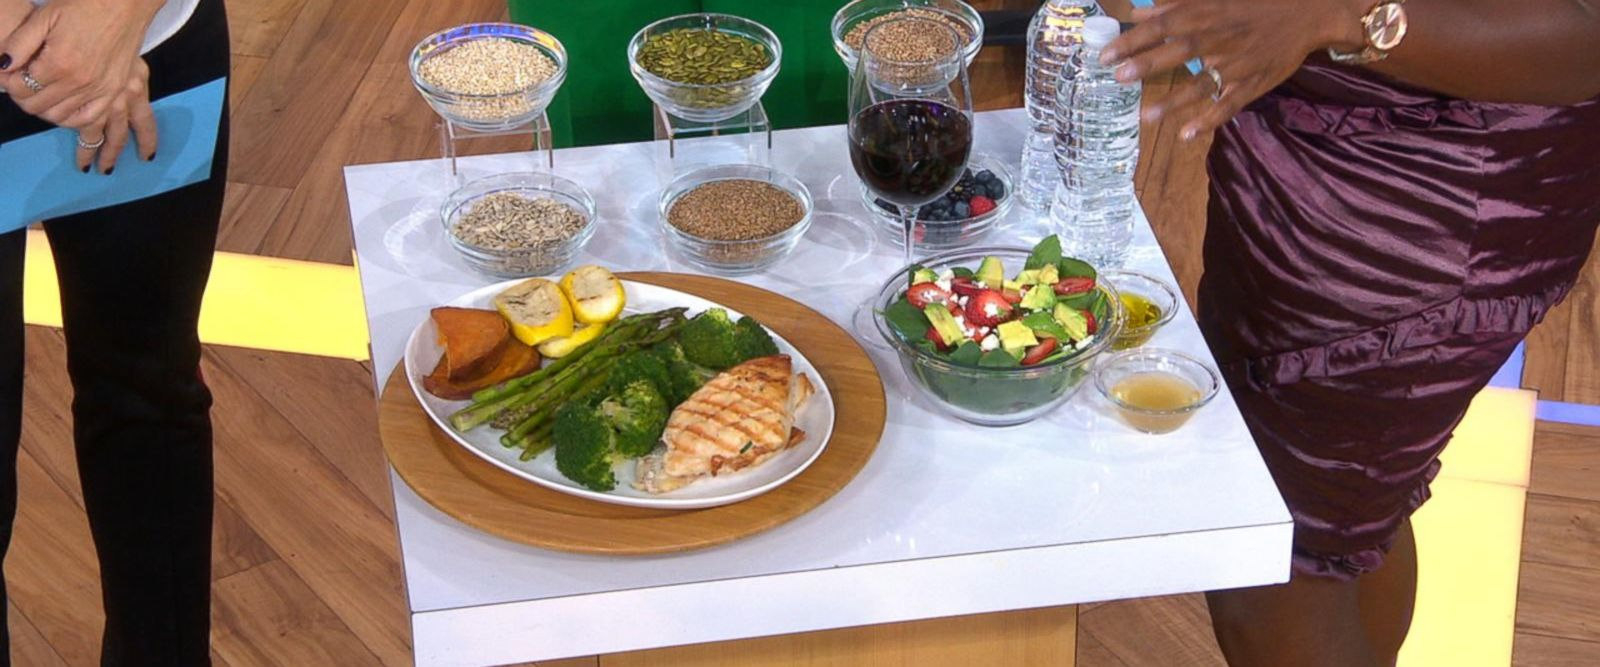 VIDEO: Beyond the scale: What to eat to lower your risk for 3 health issues